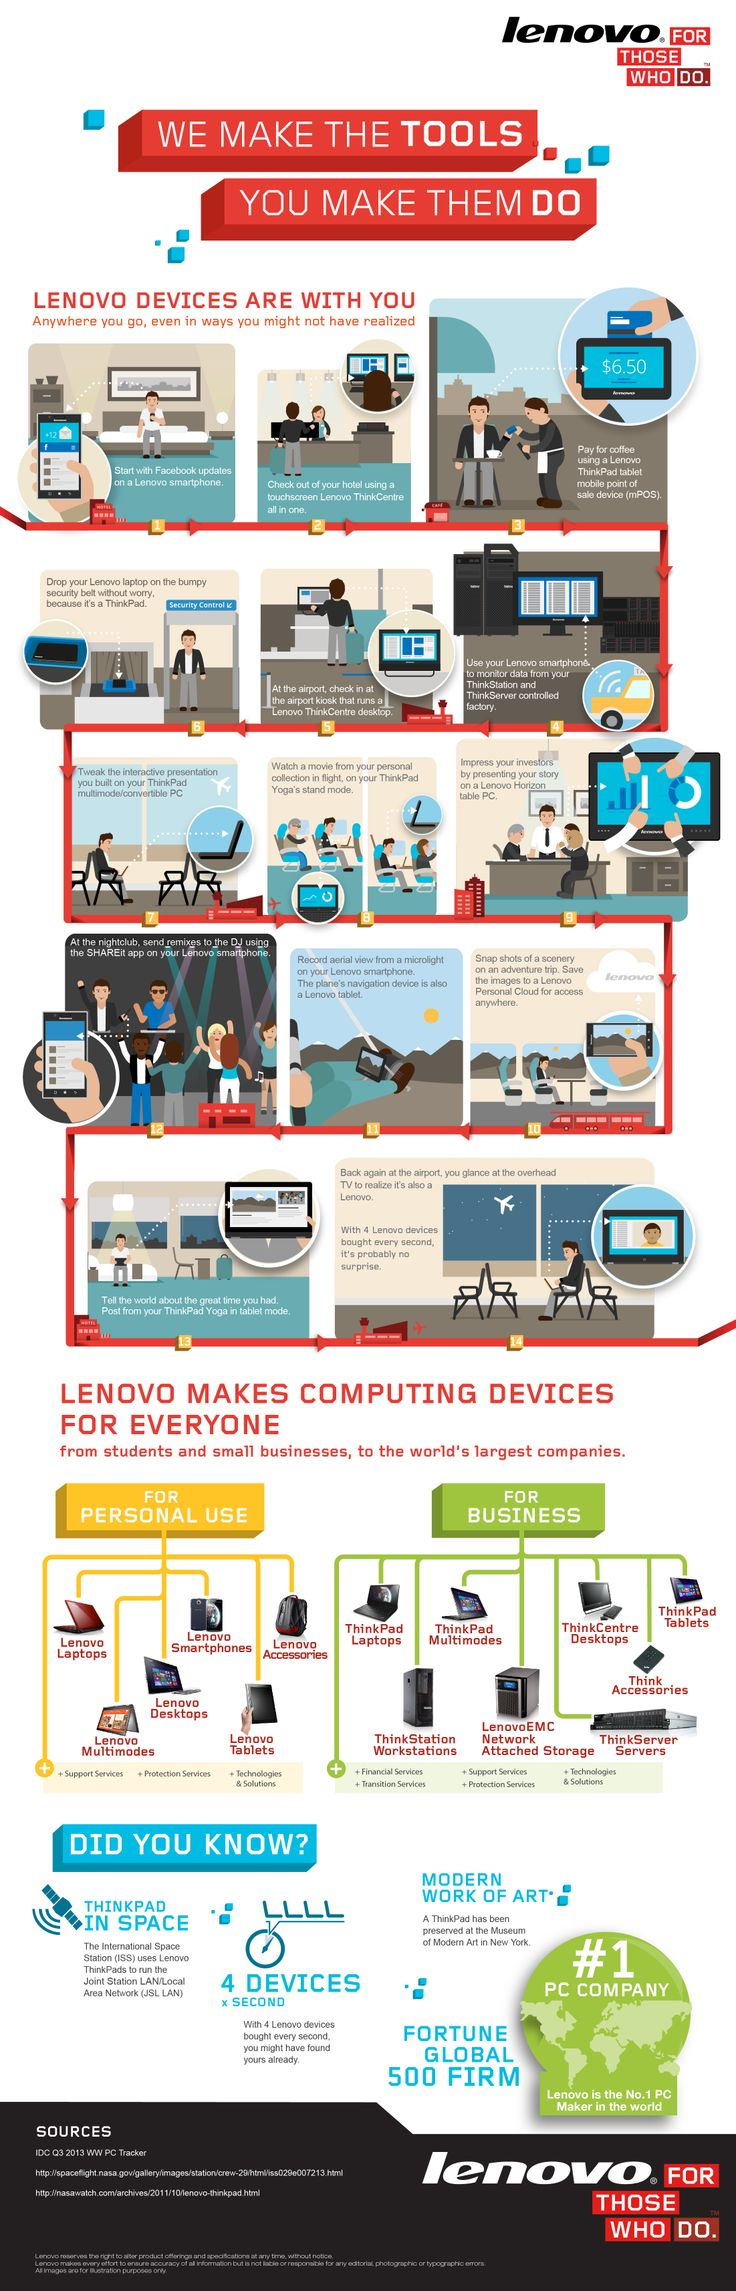 Lenovo Devices: Computer, Laptop, Ultrabook, PC and Tablet